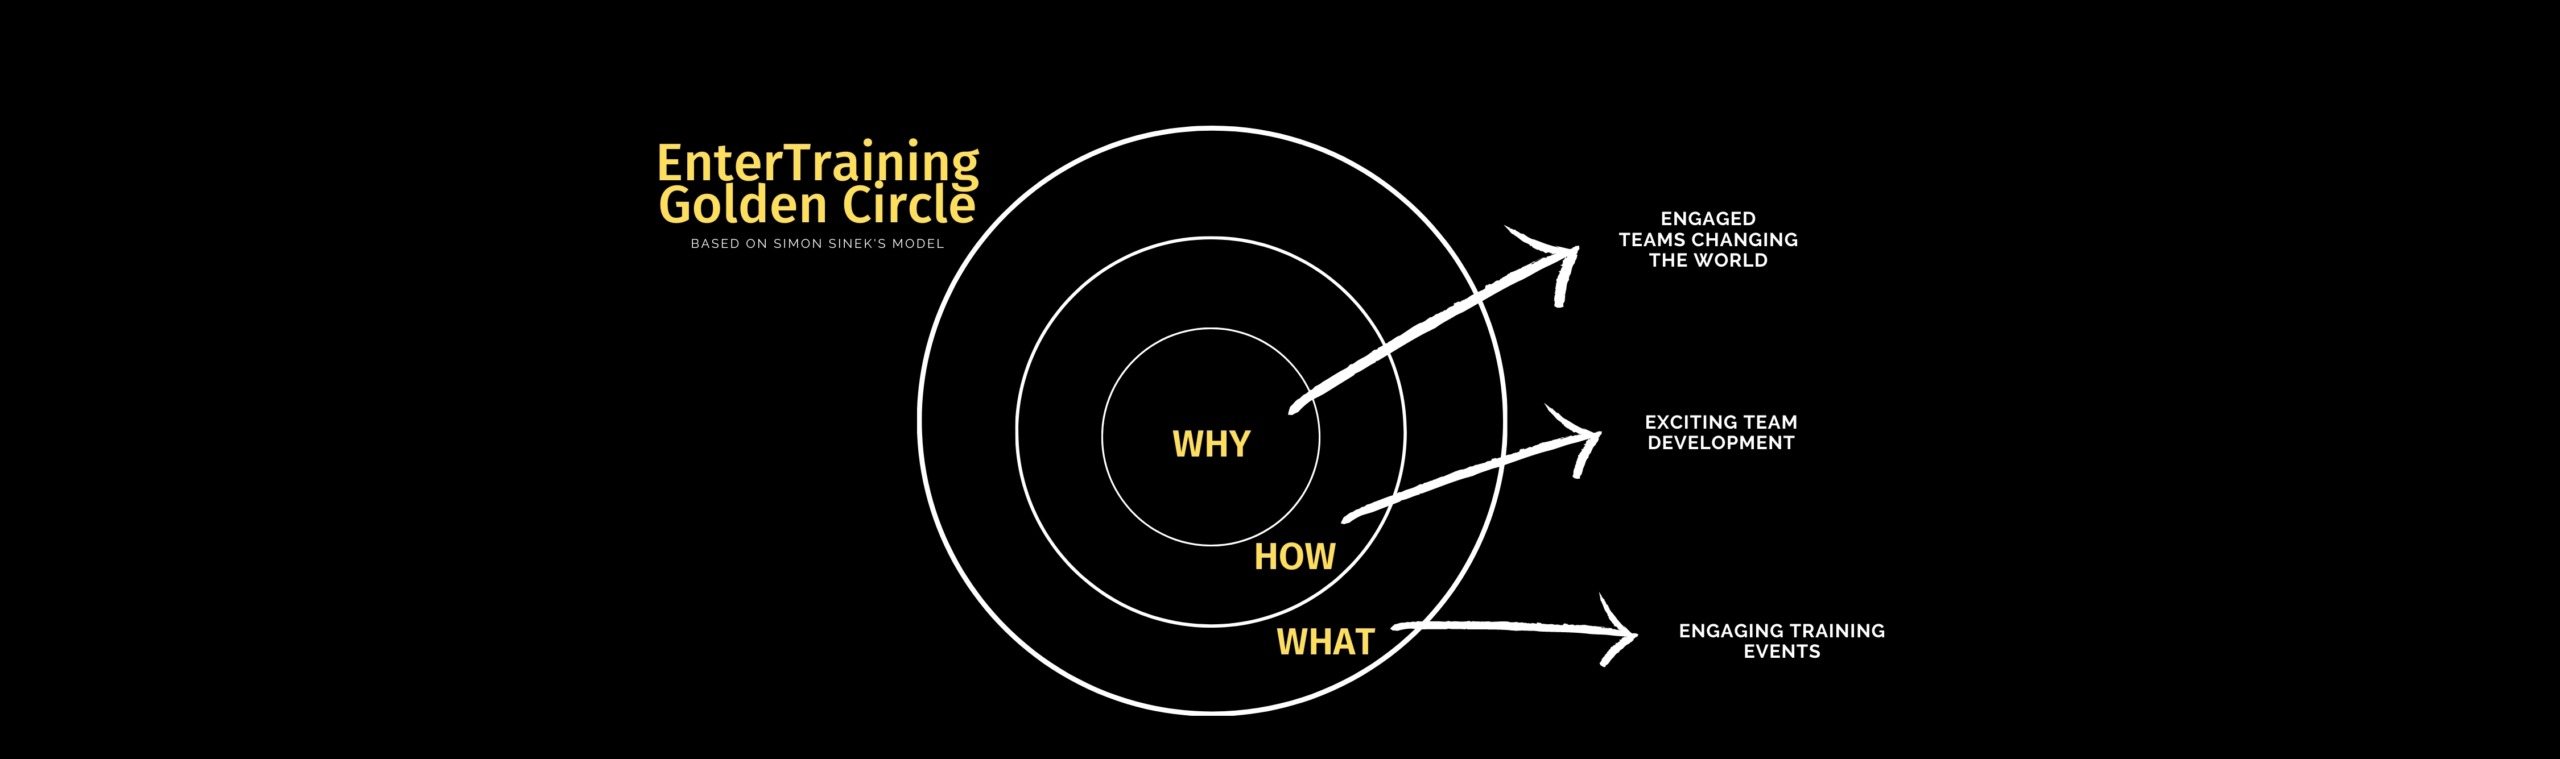 """Page title: EnterTraining Golden Circle, based on Simon Sinek's model. Inner circle is the """"Why"""": Engaged teams changing the world. Middle circle is the """"How"""": Exciting team development. And outer circle is the """"What"""": Engaging training events."""